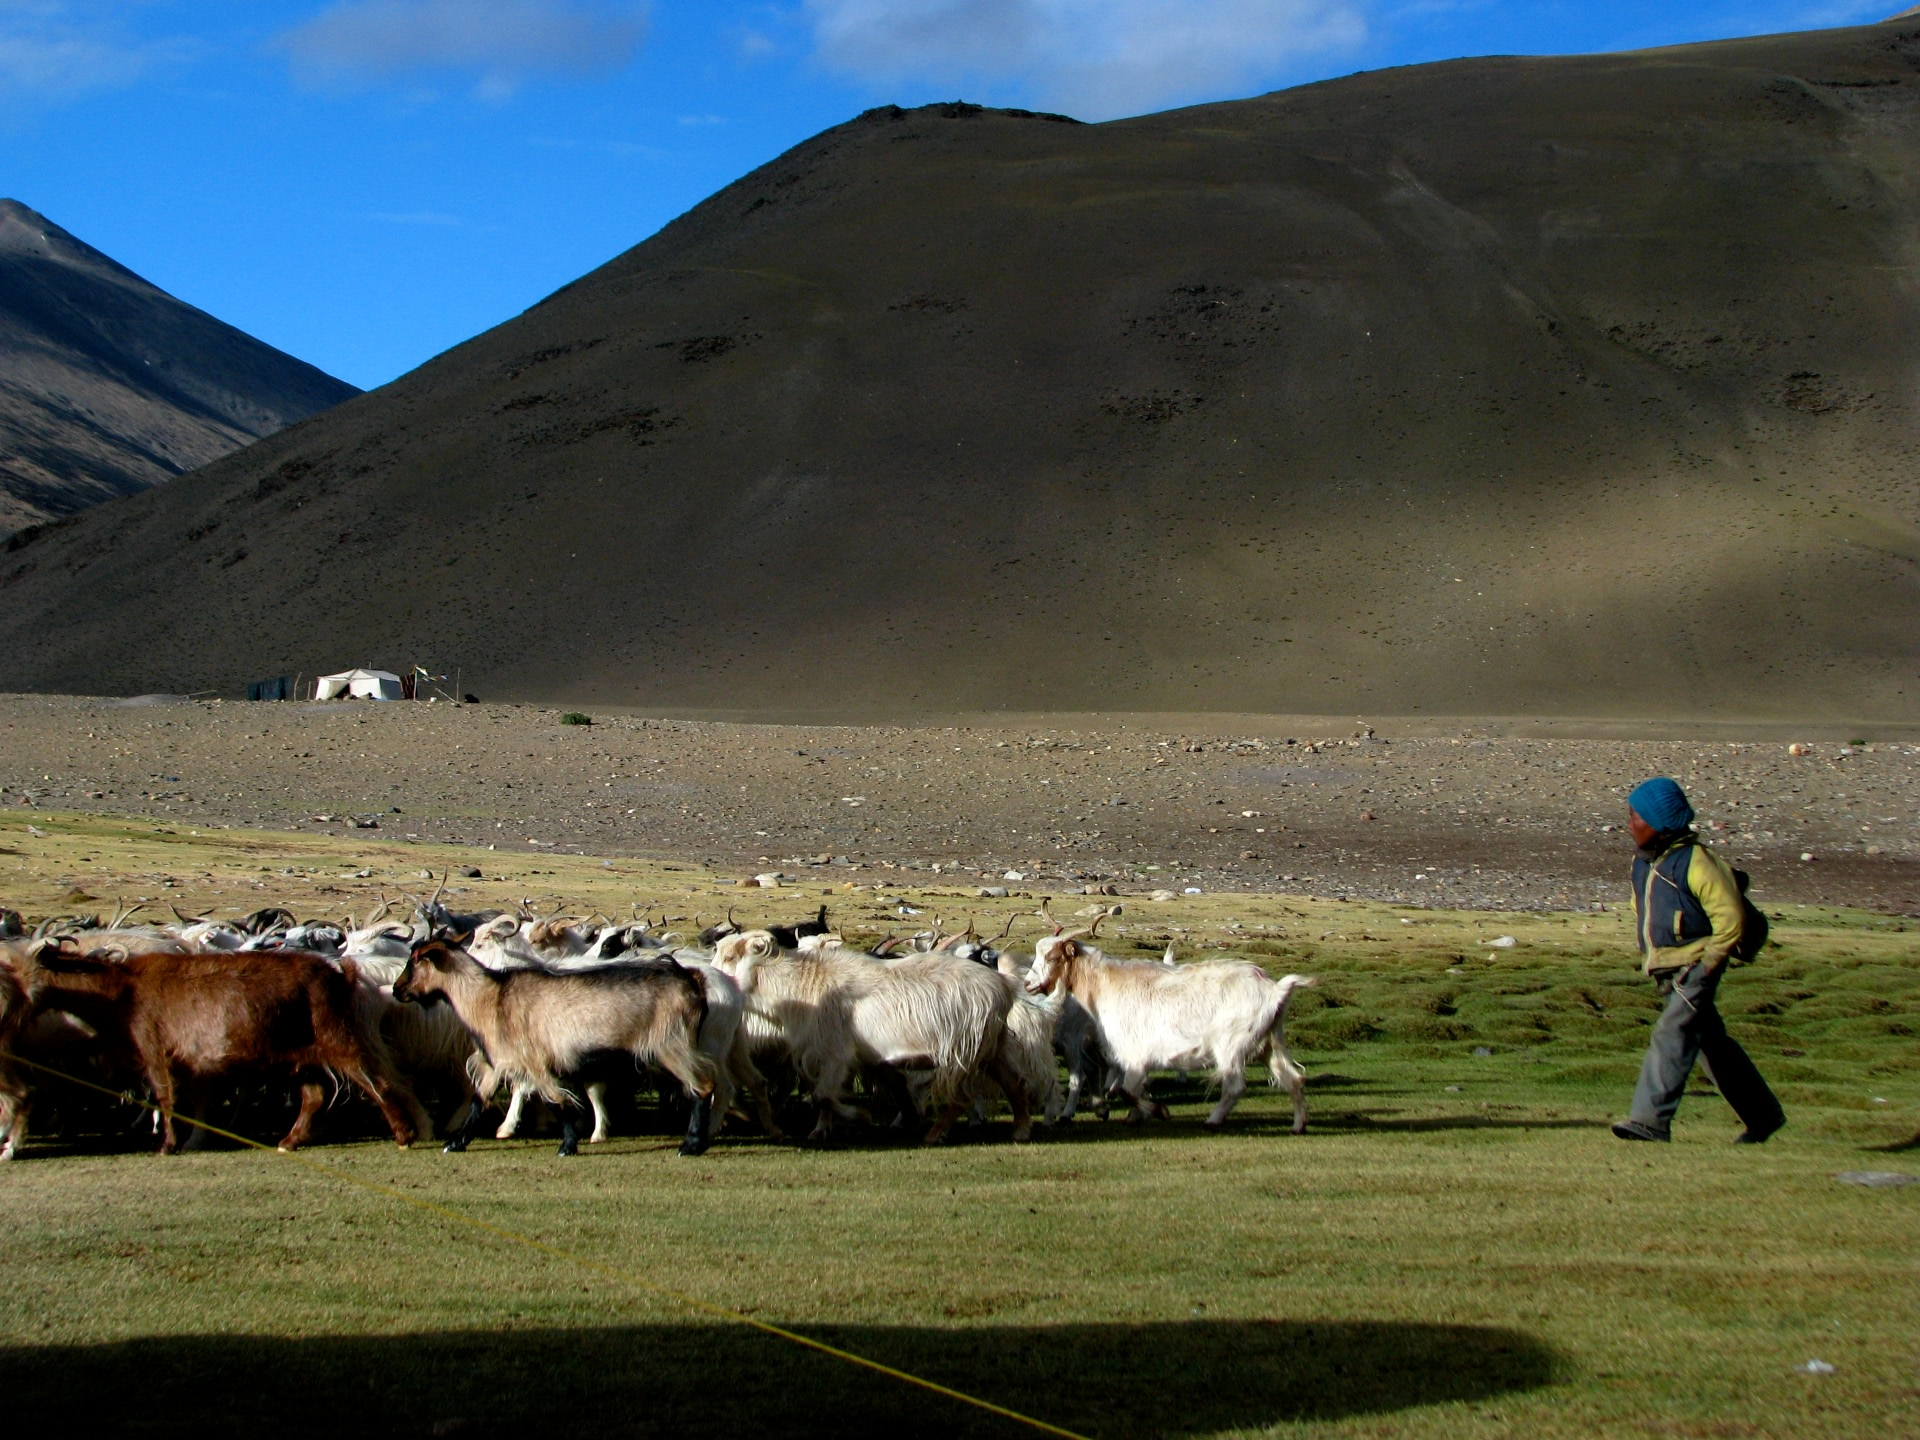 The rangelands across the Indian Trans-Himalayas are low-productivity regions. However, increased summer temperature and melting snow provides these areas with a much-needed burst of green. Photo: McKay Savage/CC BY 2.0